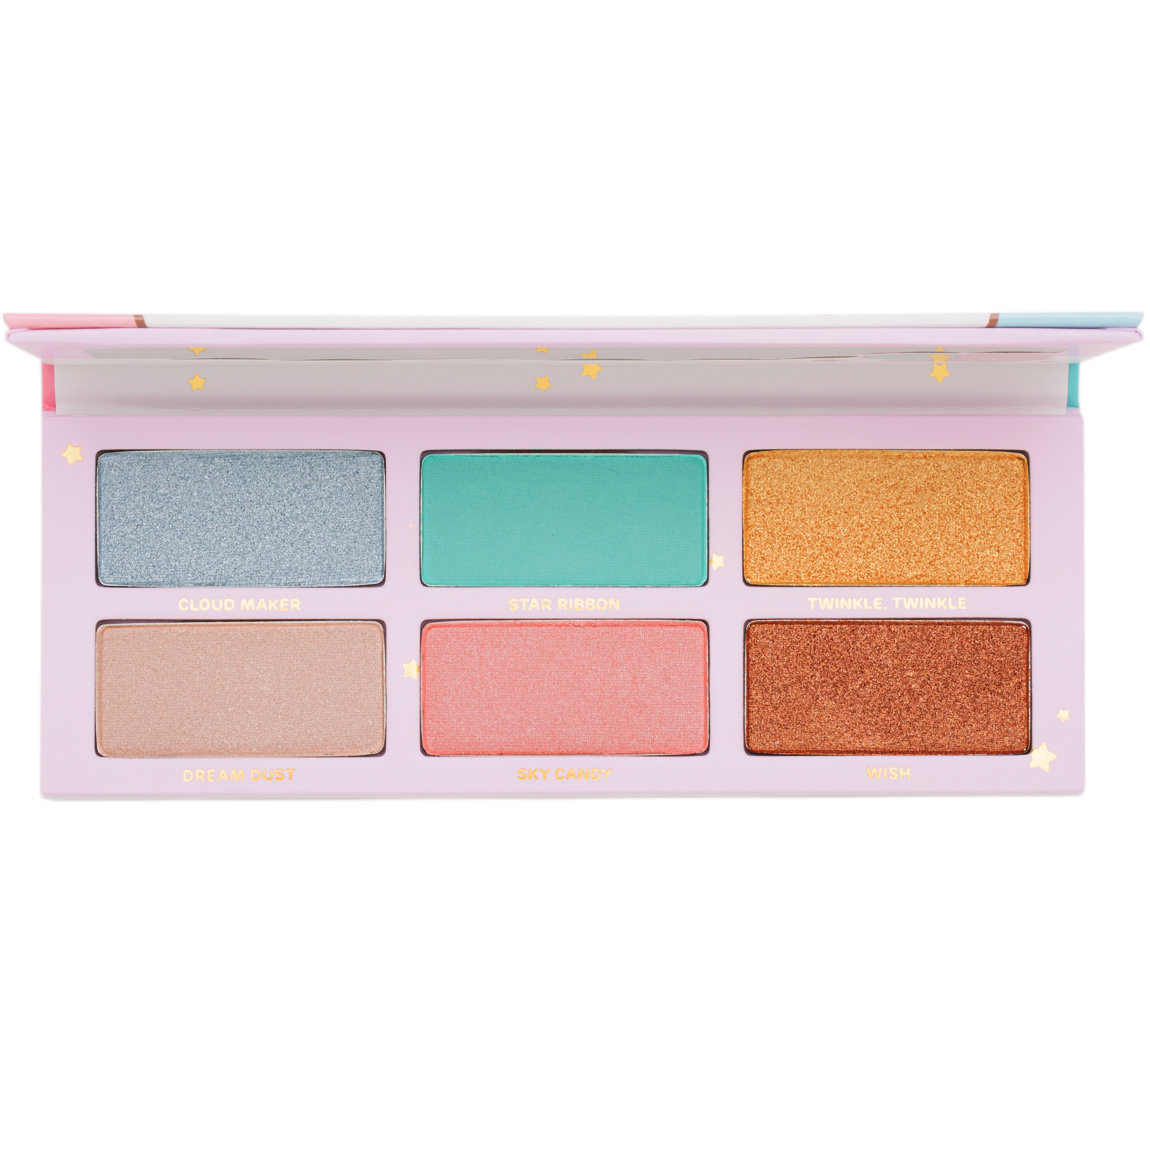 Sugarpill Cosmetics Little Twin Stars Palette product smear.